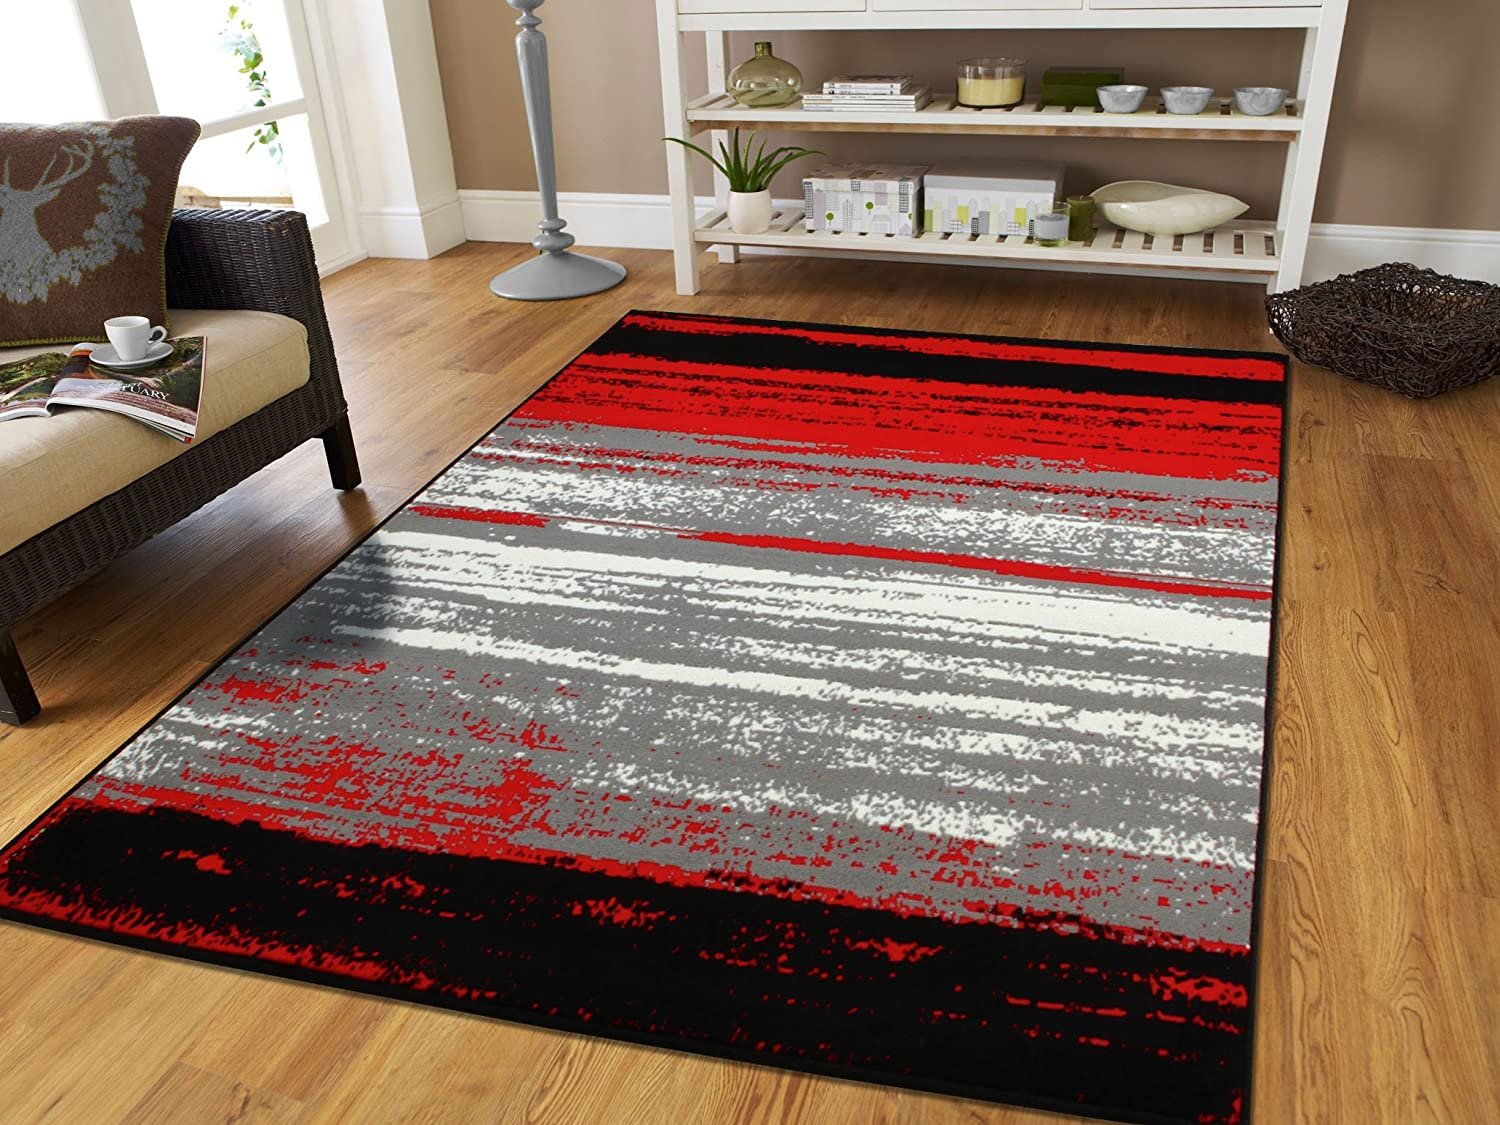 Amazoncom New Red X Rugs For Living Room Under Red Black - Black and grey and red living room